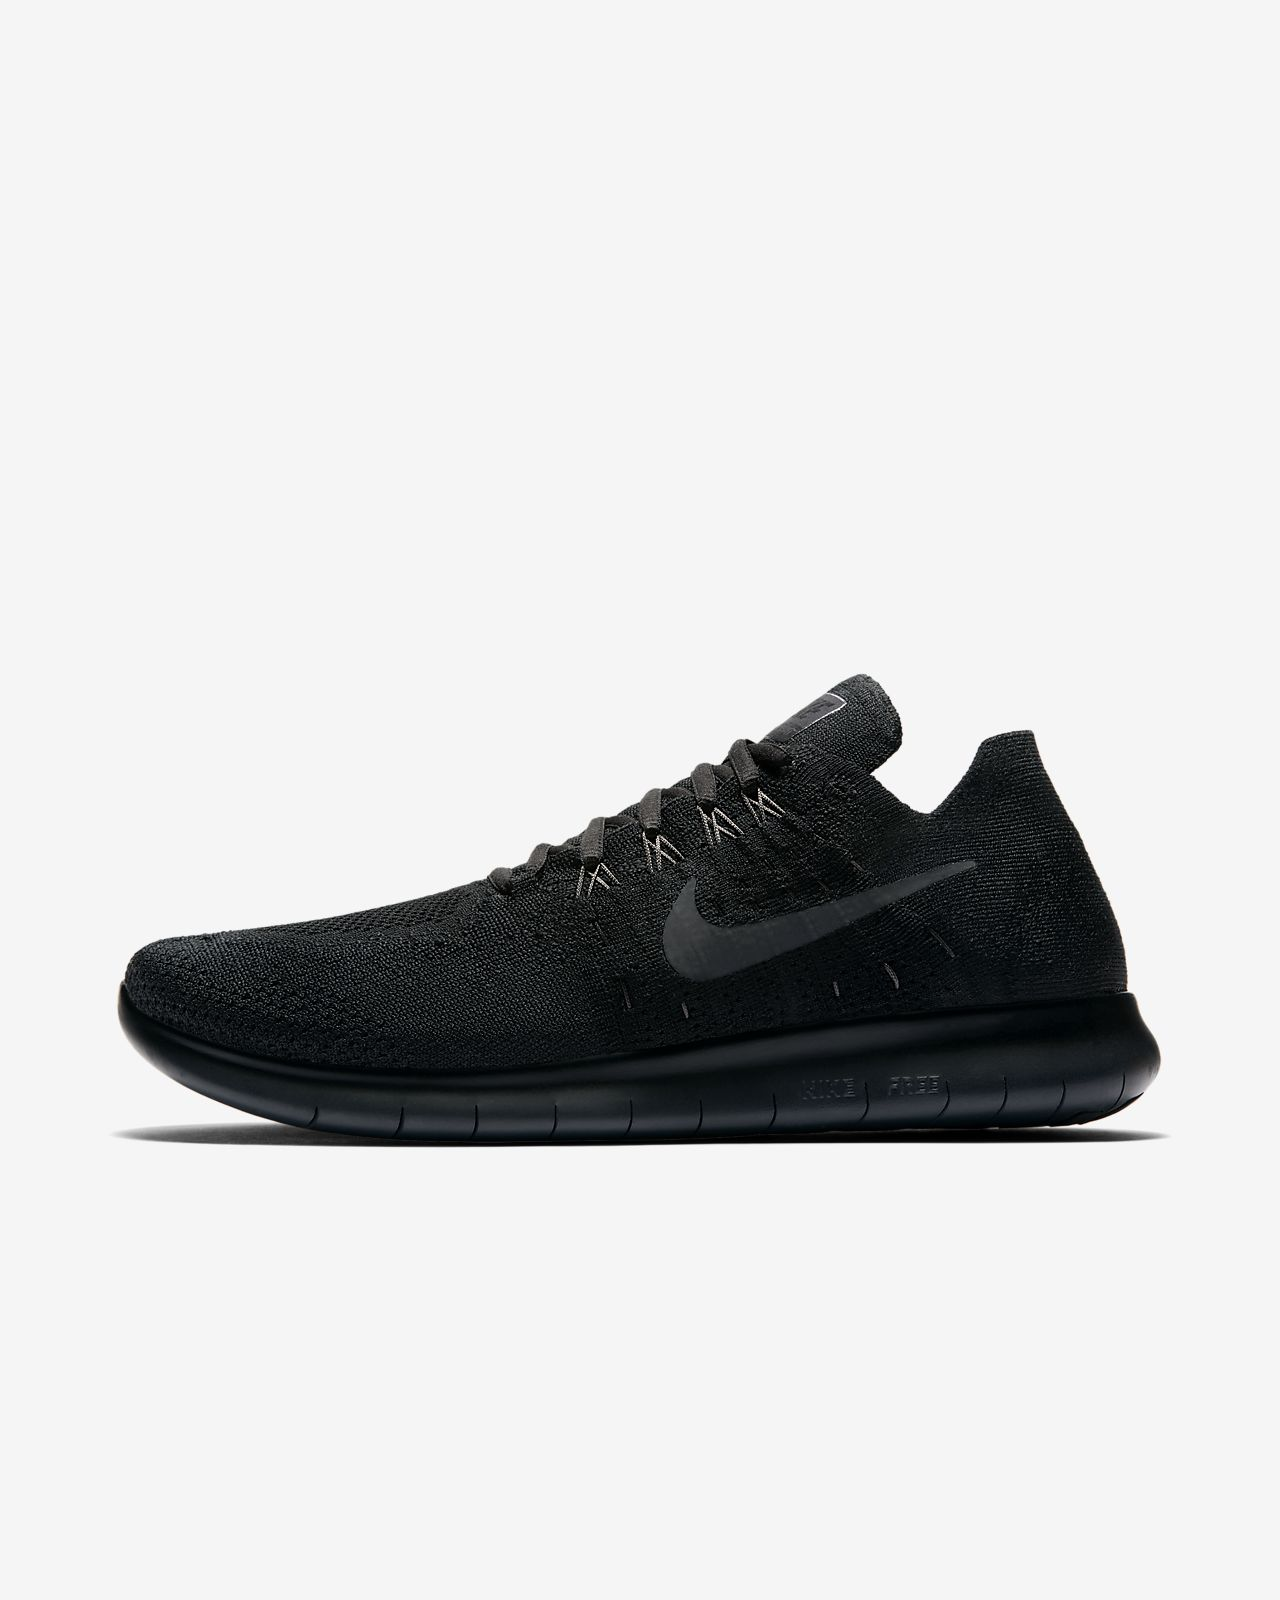 nike free rn flyknit 2017 black/anthracite/university